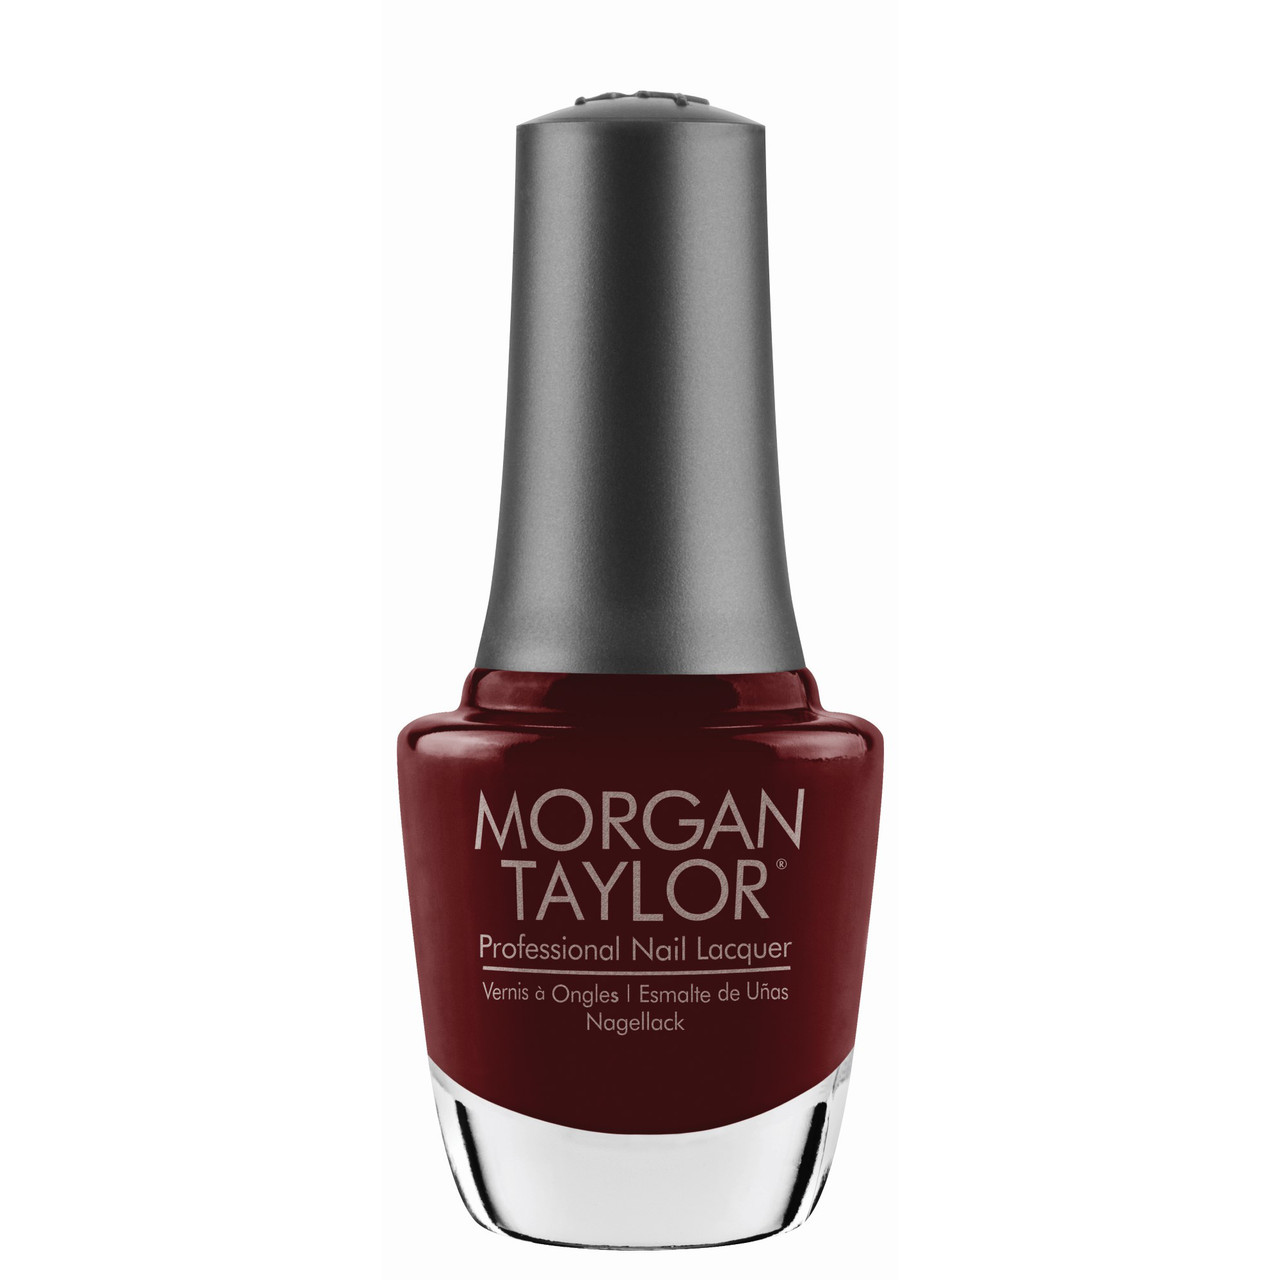 """Gelish """"Uncharted Territory"""" 3 pc. Trio - Soak Off Gel Polish, Lacquer, and Dip - Garnet Creme"""